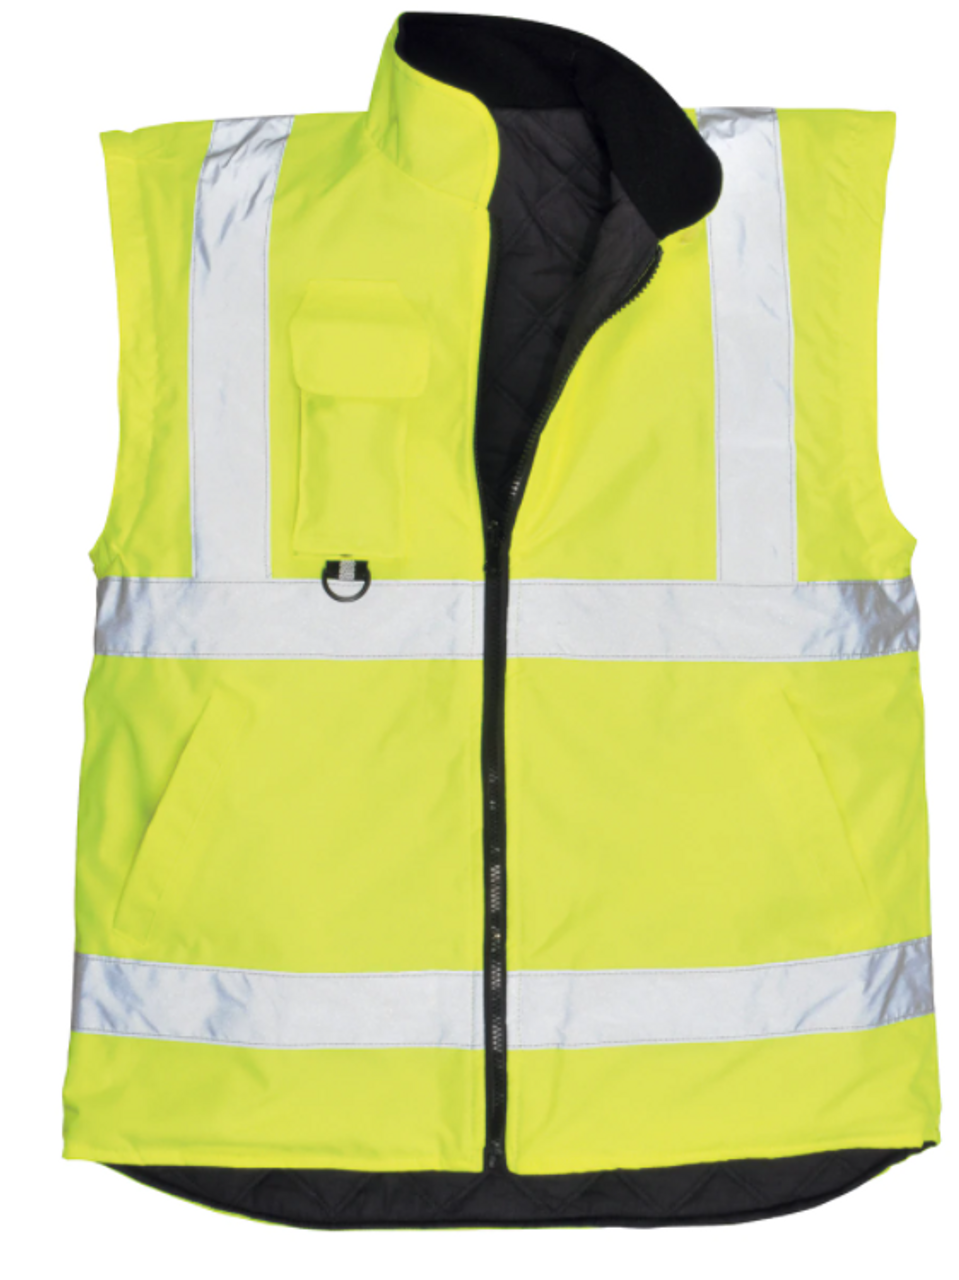 Portwest US427YER High Visibility 7-in-1 Traffic Jacket, Yellow